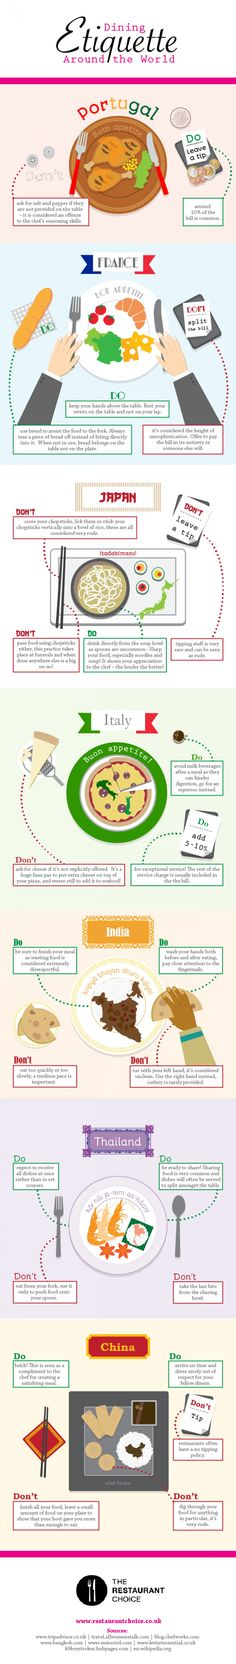 """Hubspot infographic-world-dining-etiquette ; For India it says """"Eat with your right hand, cutlery is rarely provided"""" LOL!"""